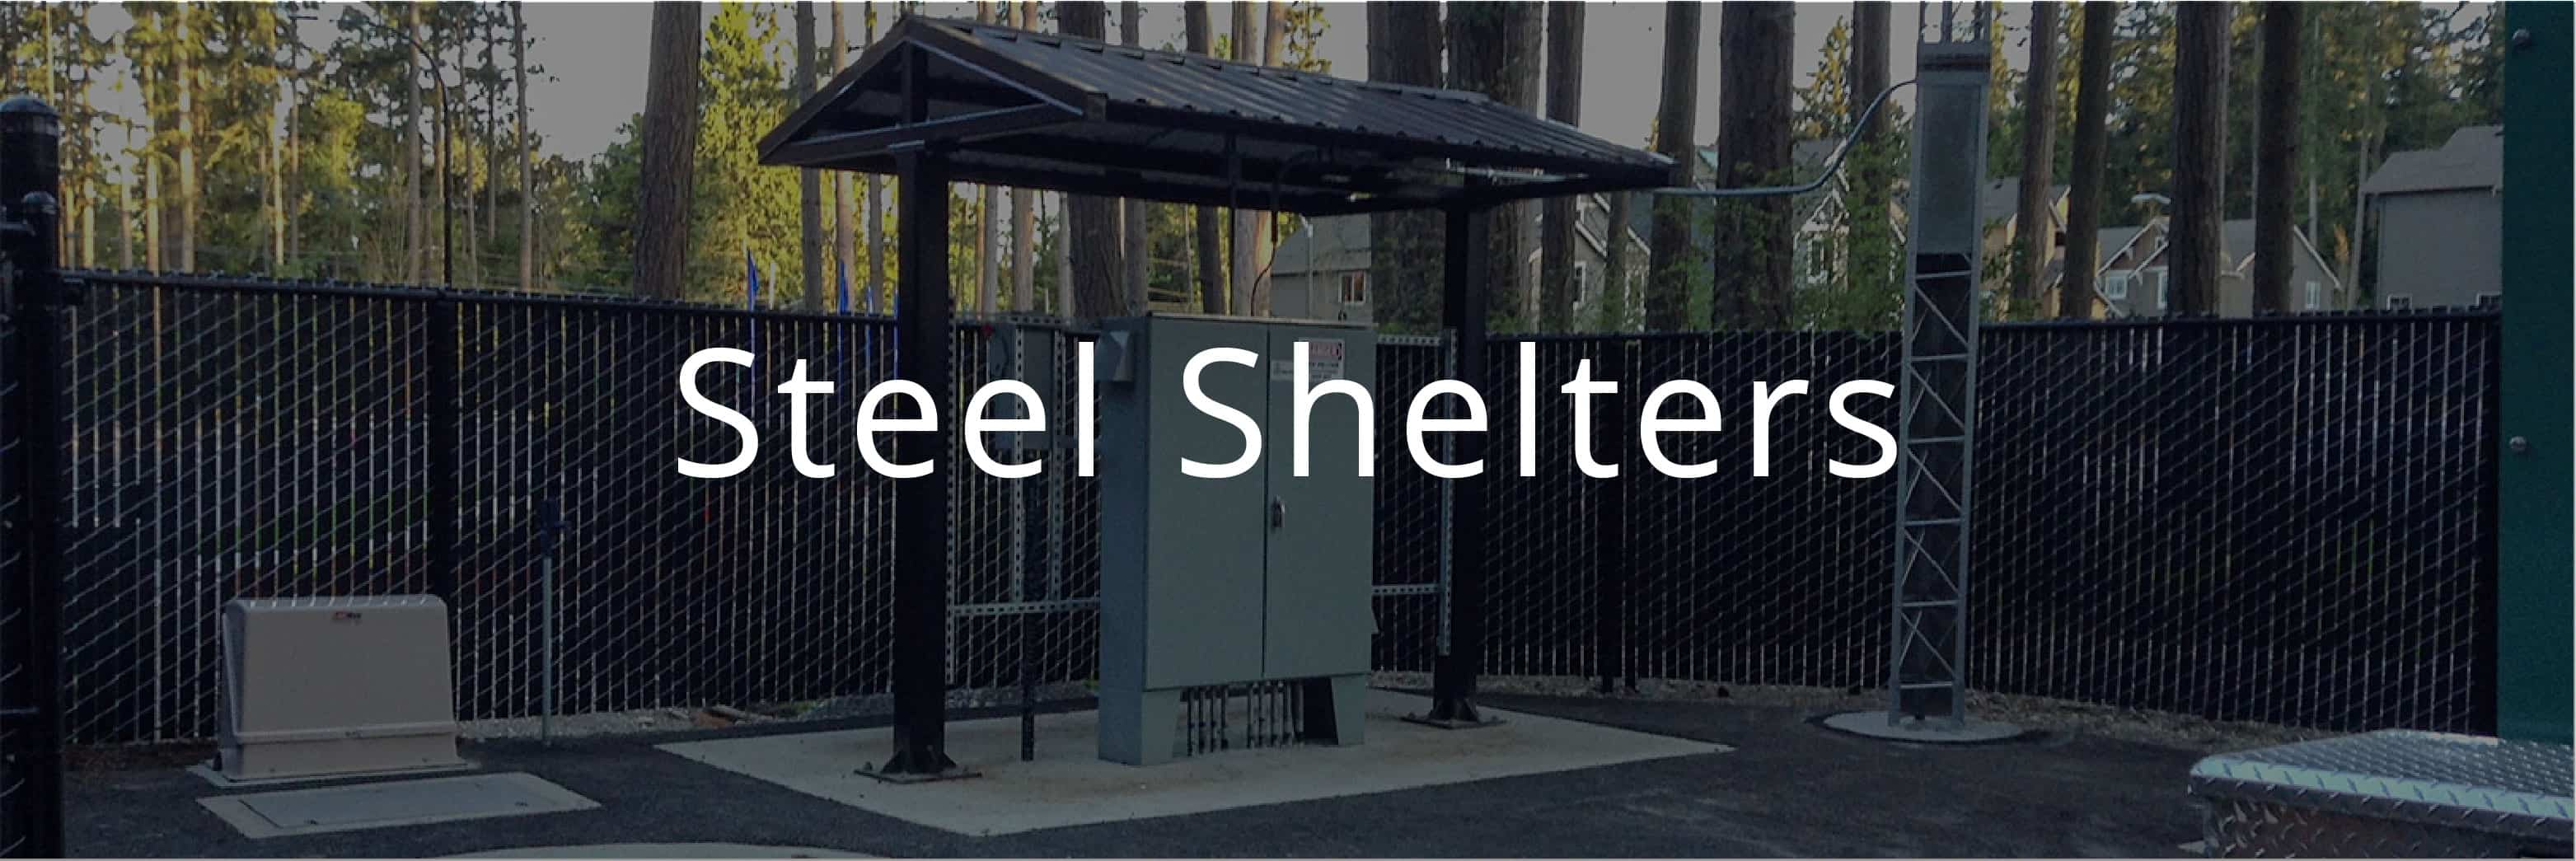 Small Steel Framed Shelters